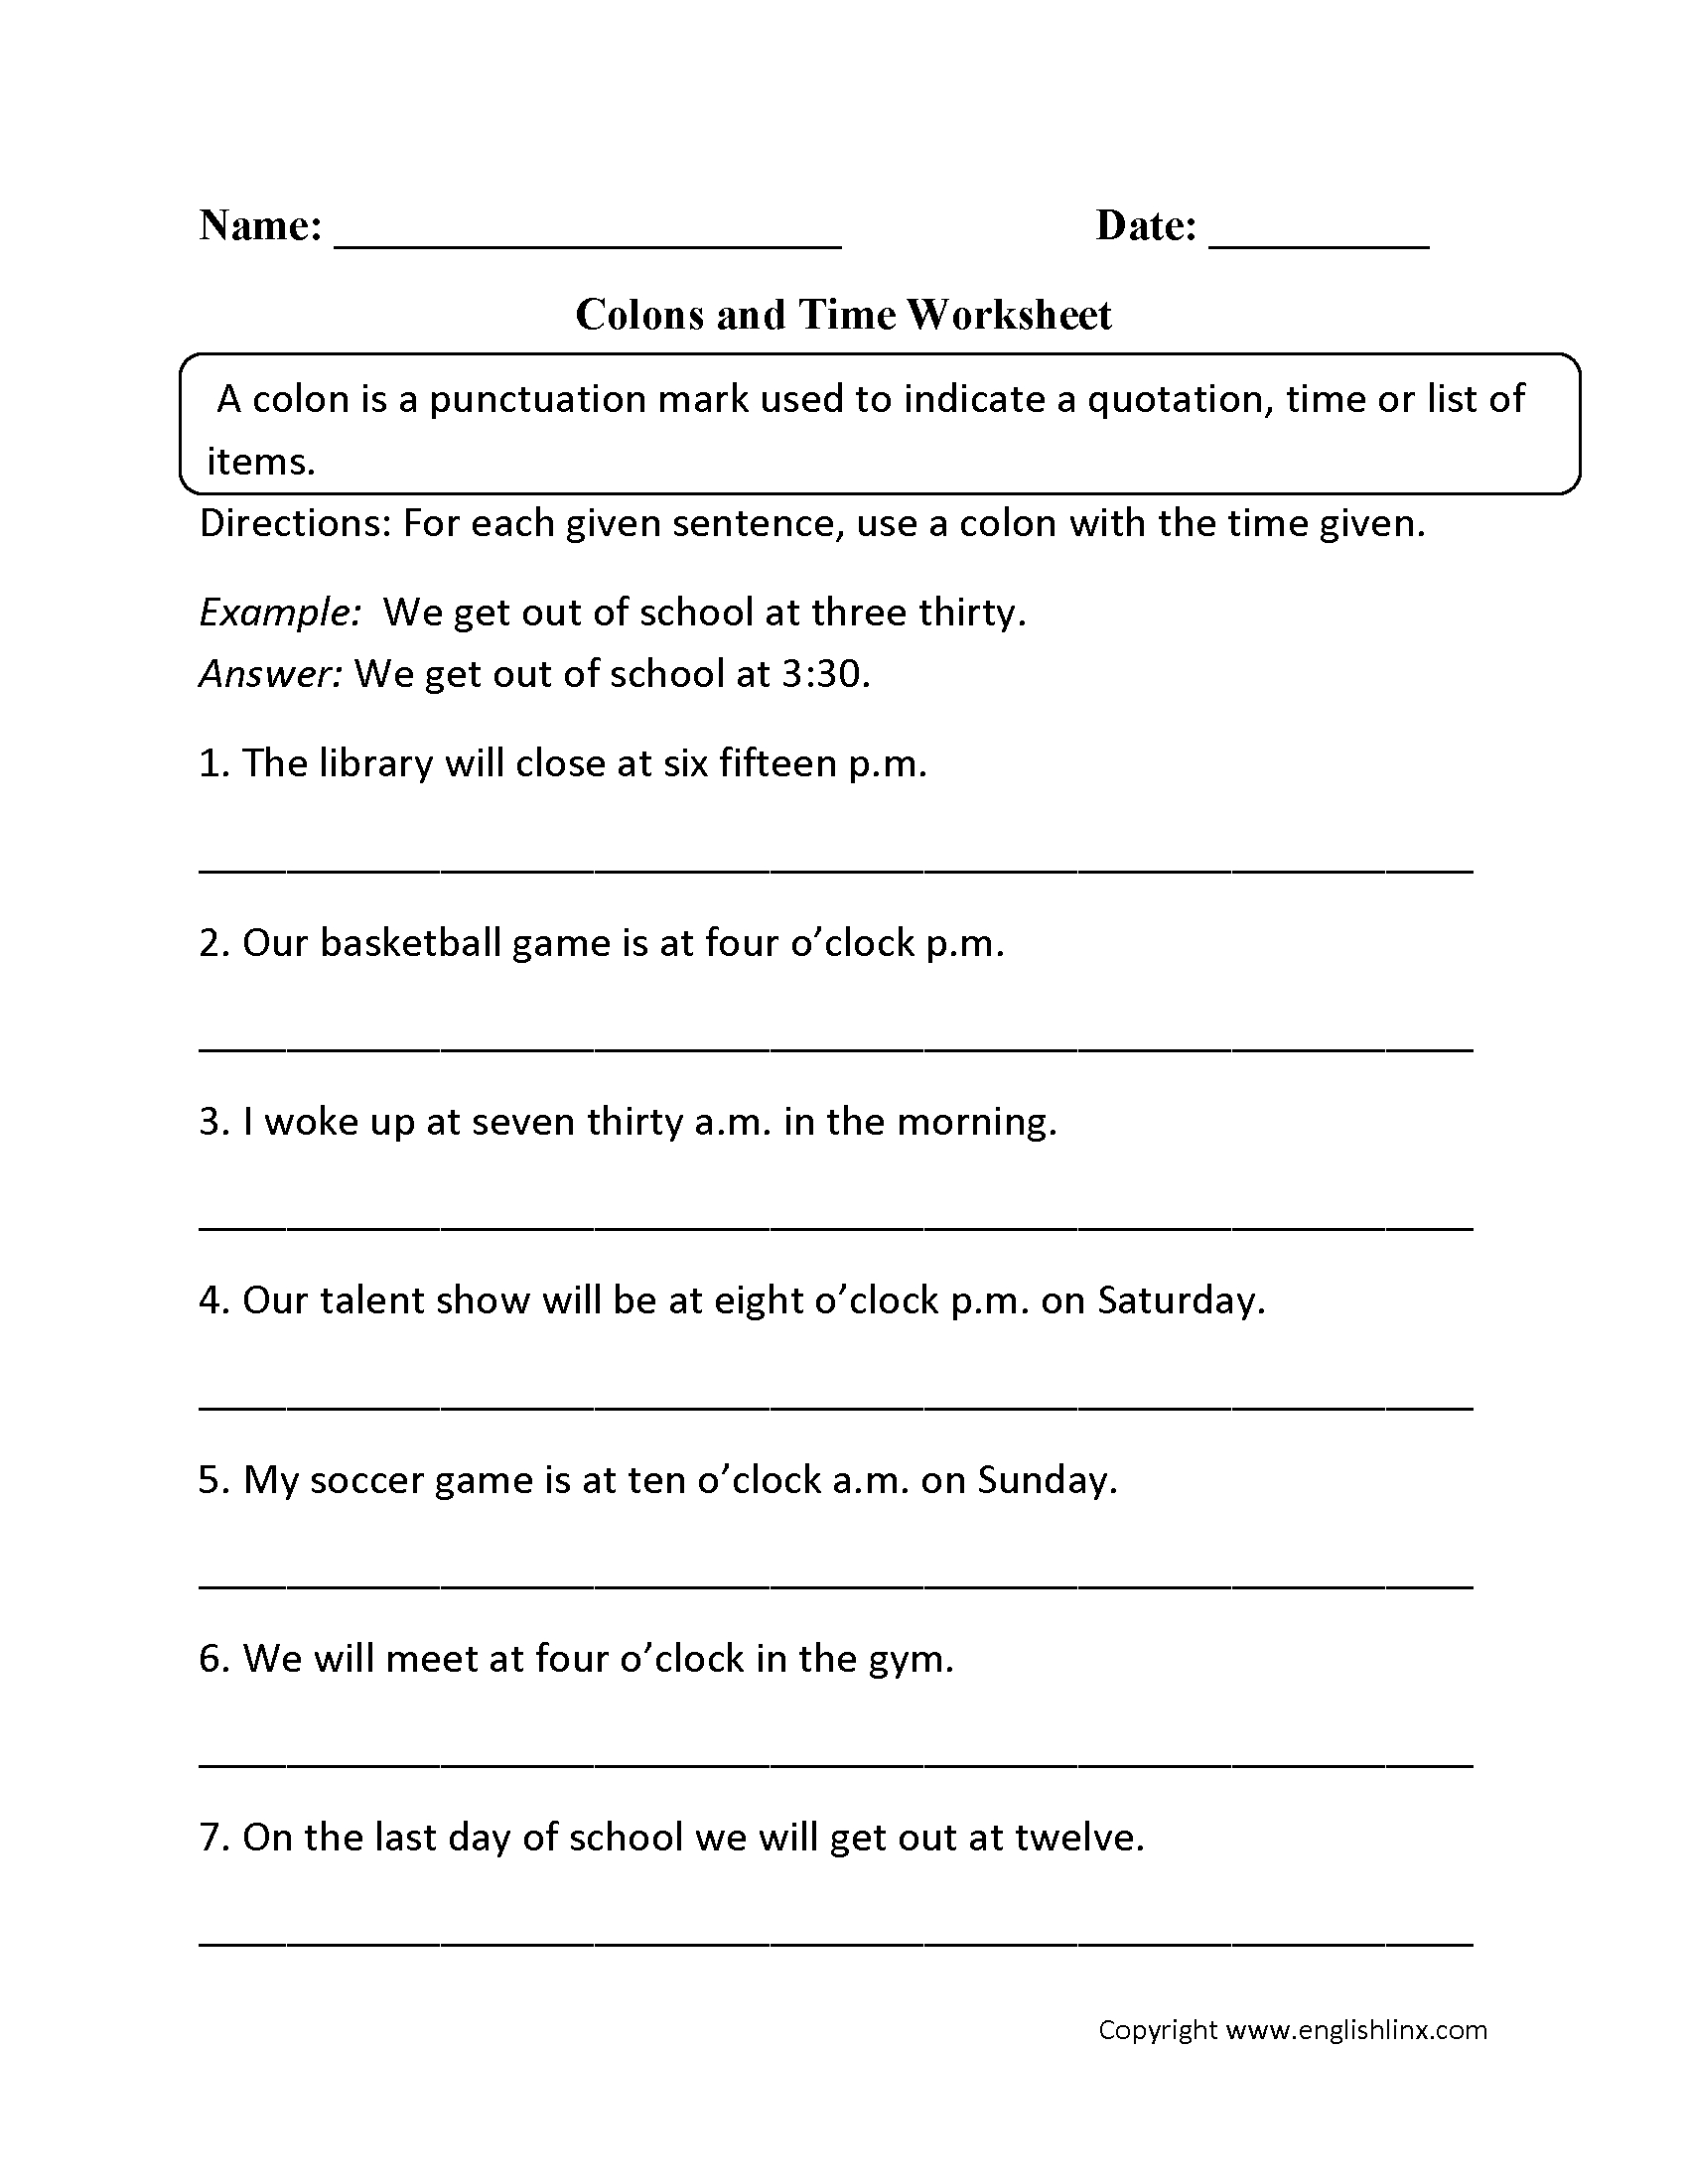 Punctuation Worksheets | Colon Worksheets - Free Printable Third Grade Grammar Worksheets